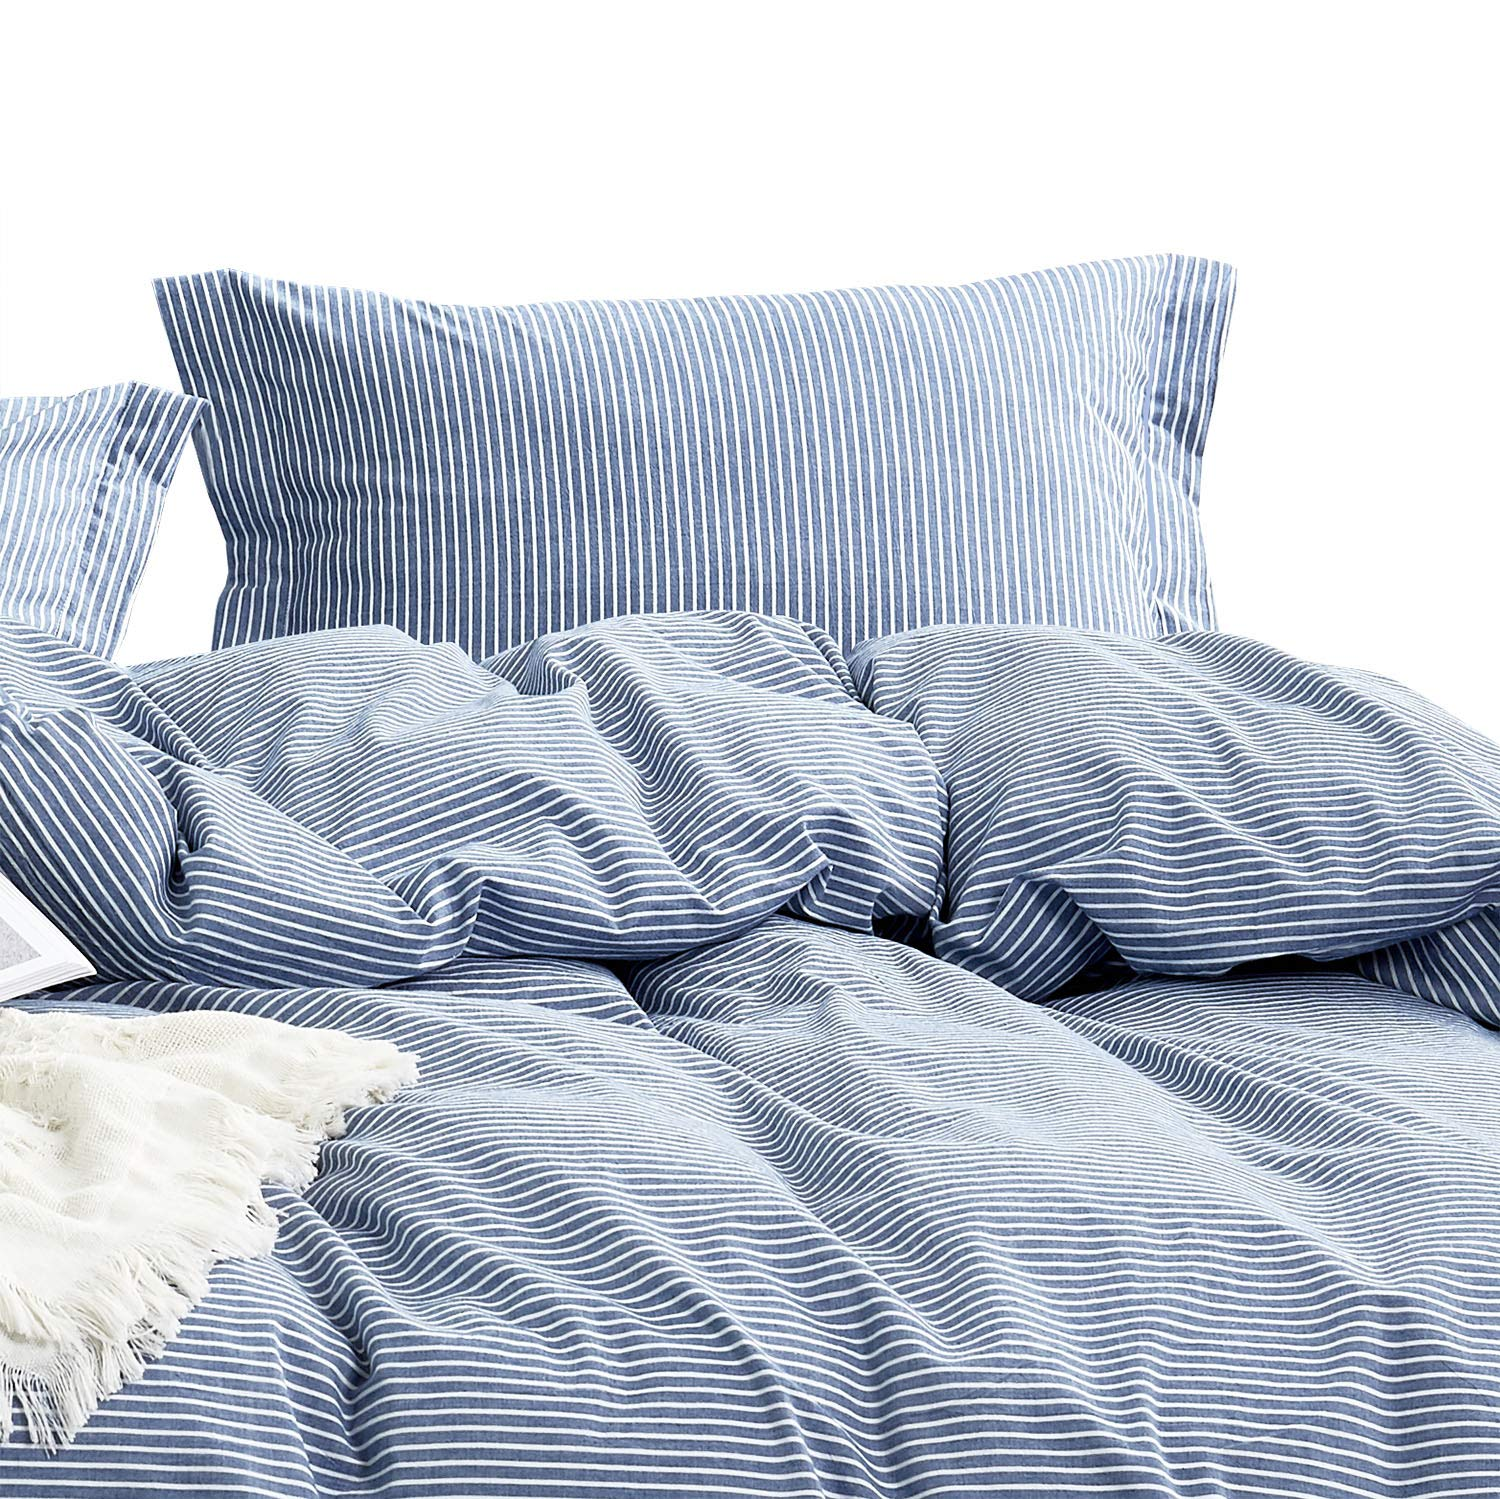 Wake In Cloud - Washed Cotton Duvet Cover Set, White Striped Ticking Pattern Printed on Navy Blue, 100% Cotton Bedding, with Zipper Closure (3pcs, Twin Size)